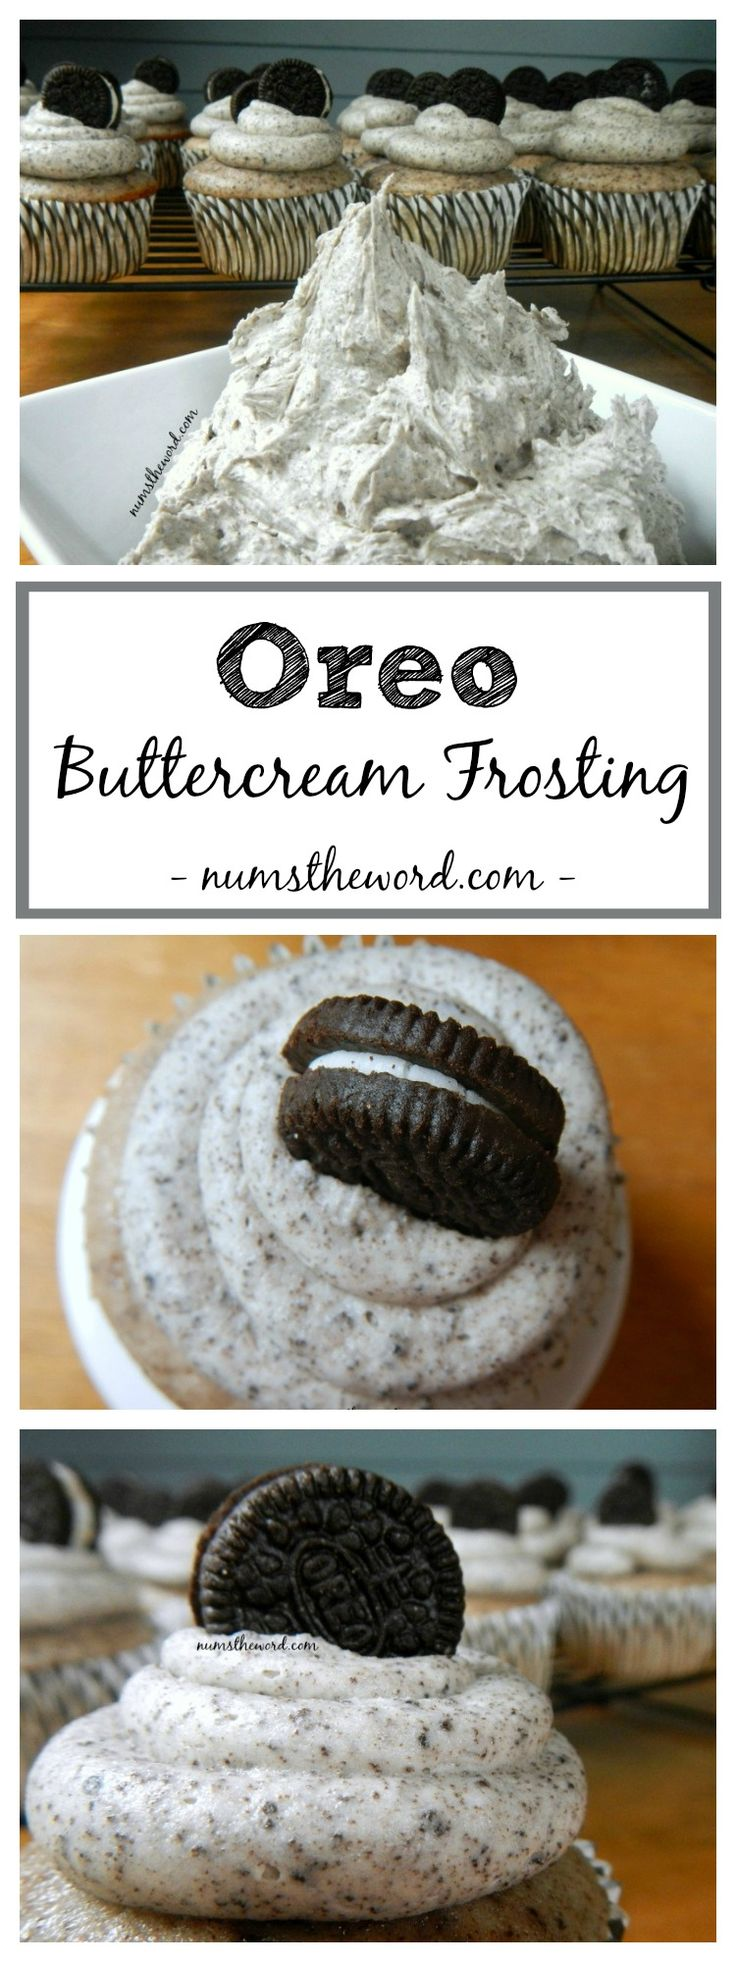 FROSTINGS, CAKES, SWEETS Oreo Buttercream Frosting is the BEST frosting you'll ever eat. It tastes JUST LIKE AN OREO and is perfect as a cake frosting or a cupcake frosting!